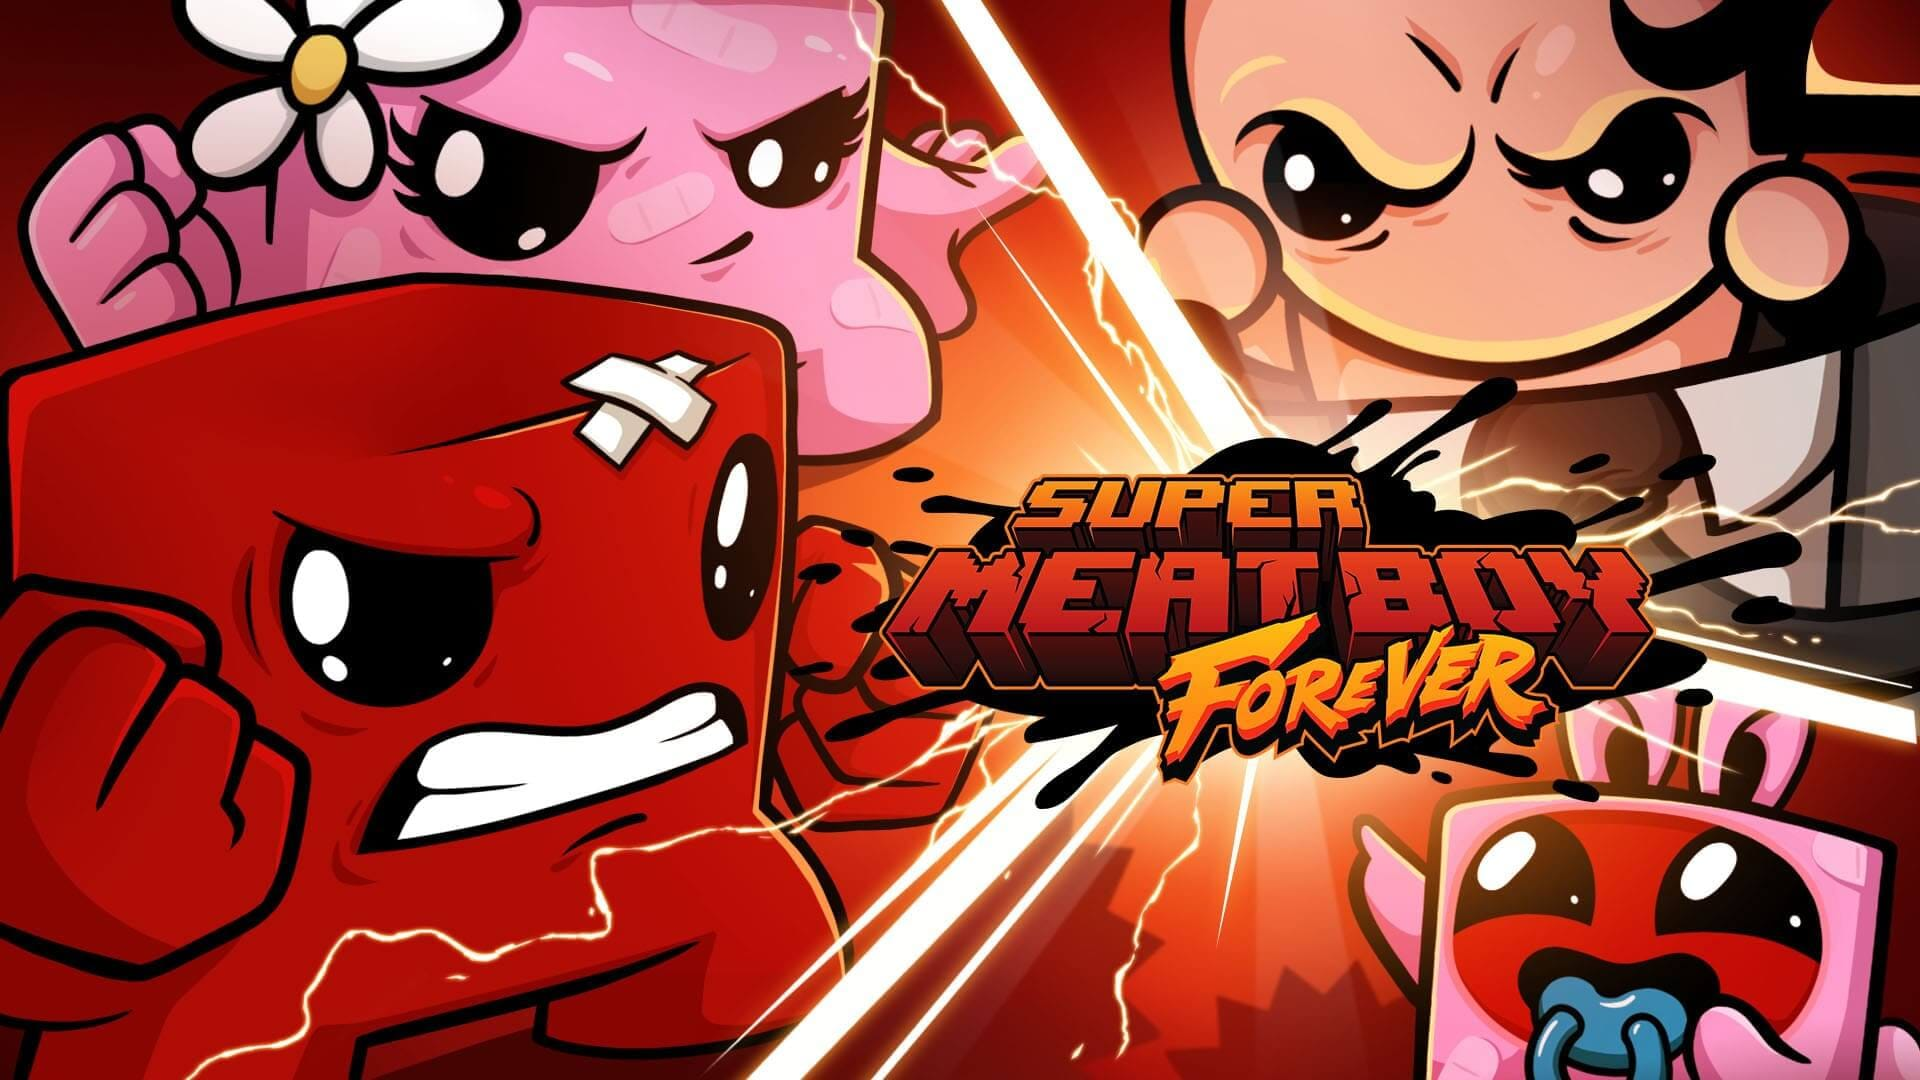 Read more about the article Super Meat Boy Forever